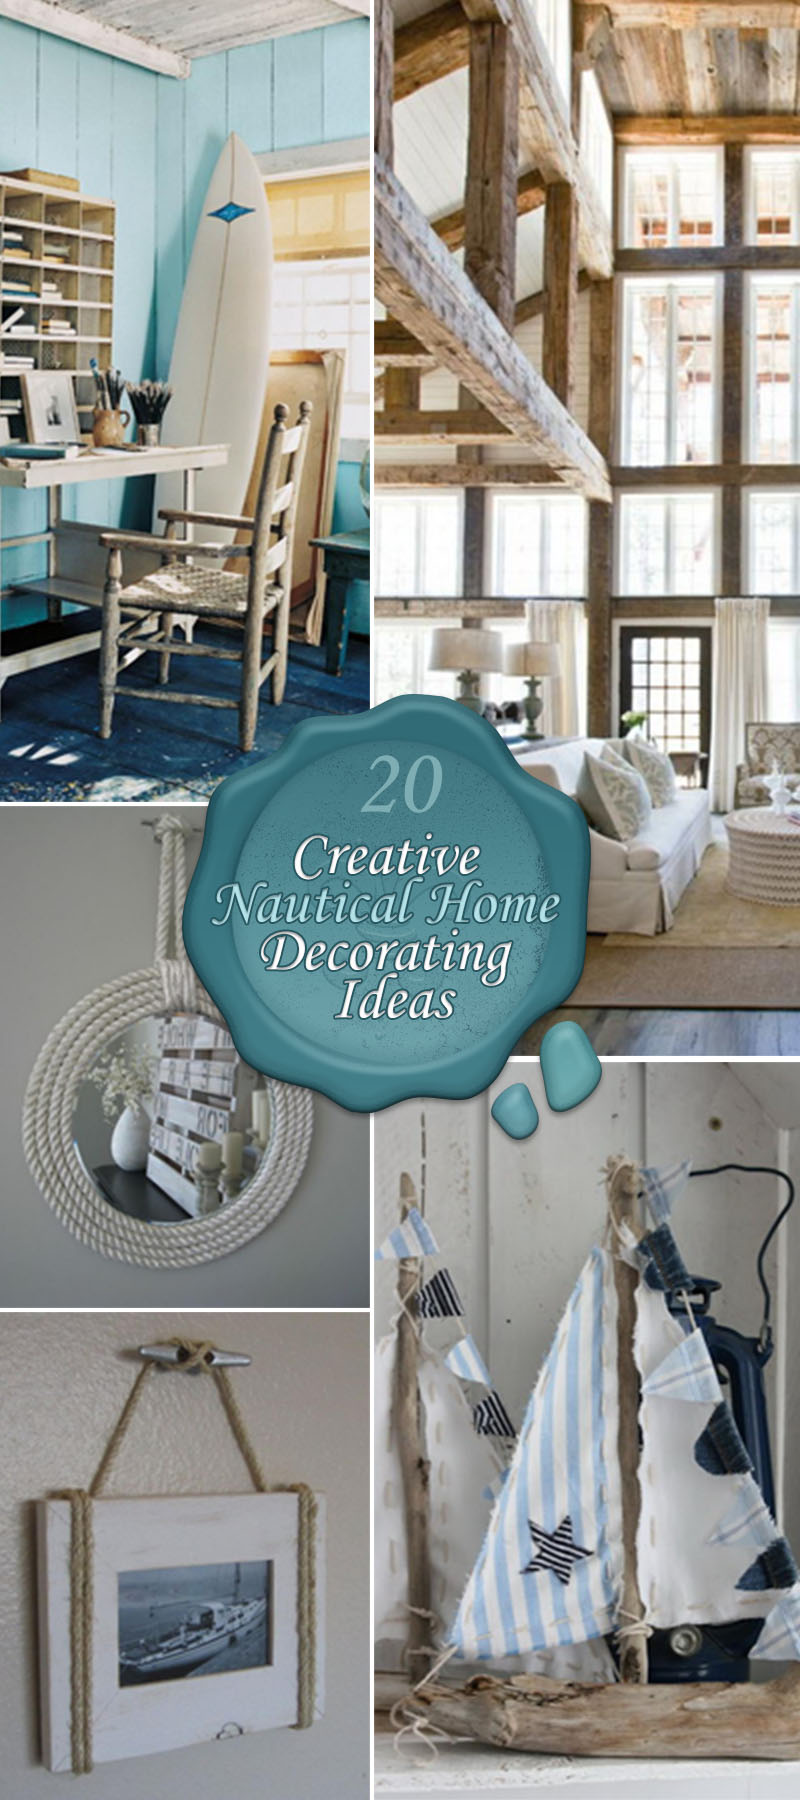 Best 20 Creative Nautical Home Decorating Ideas Hative This Month